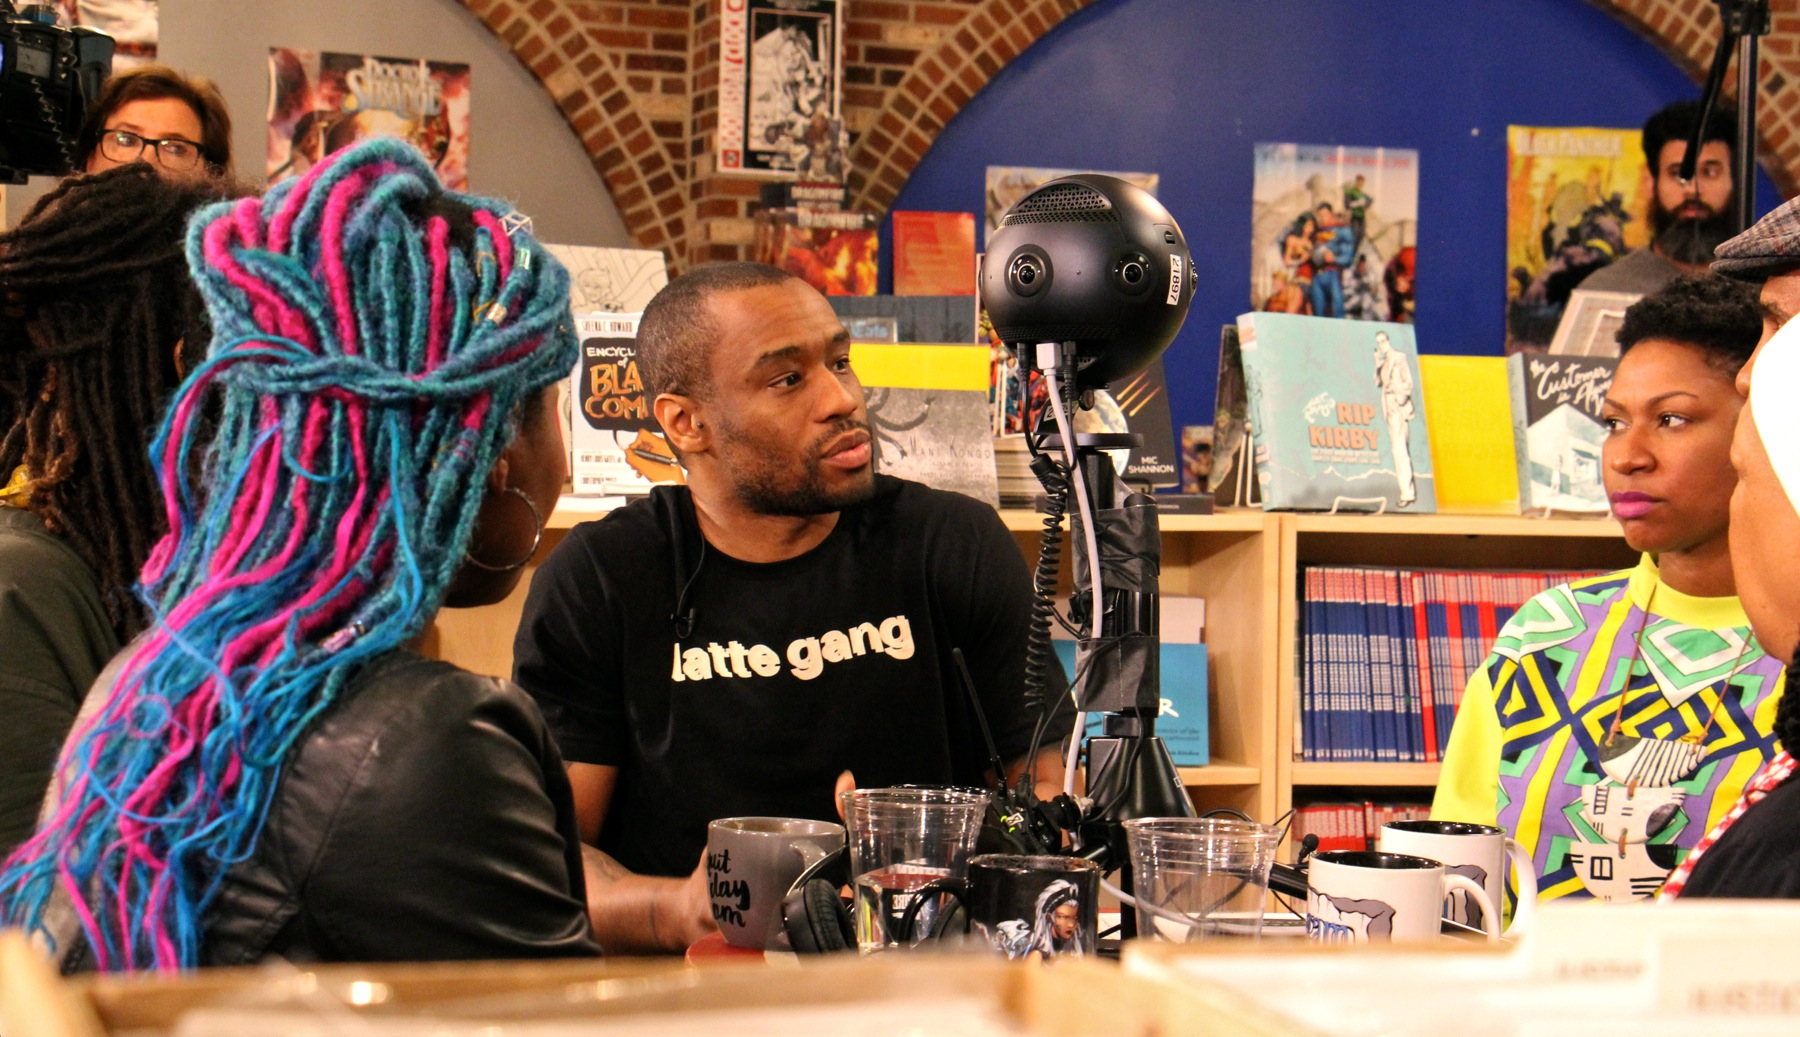 Marc Lamont Hill, activist and owner of Uncle Bobbie's Coffee & Books, participates in the roundtable discussion which was live-streamed using a 360-degree camera.